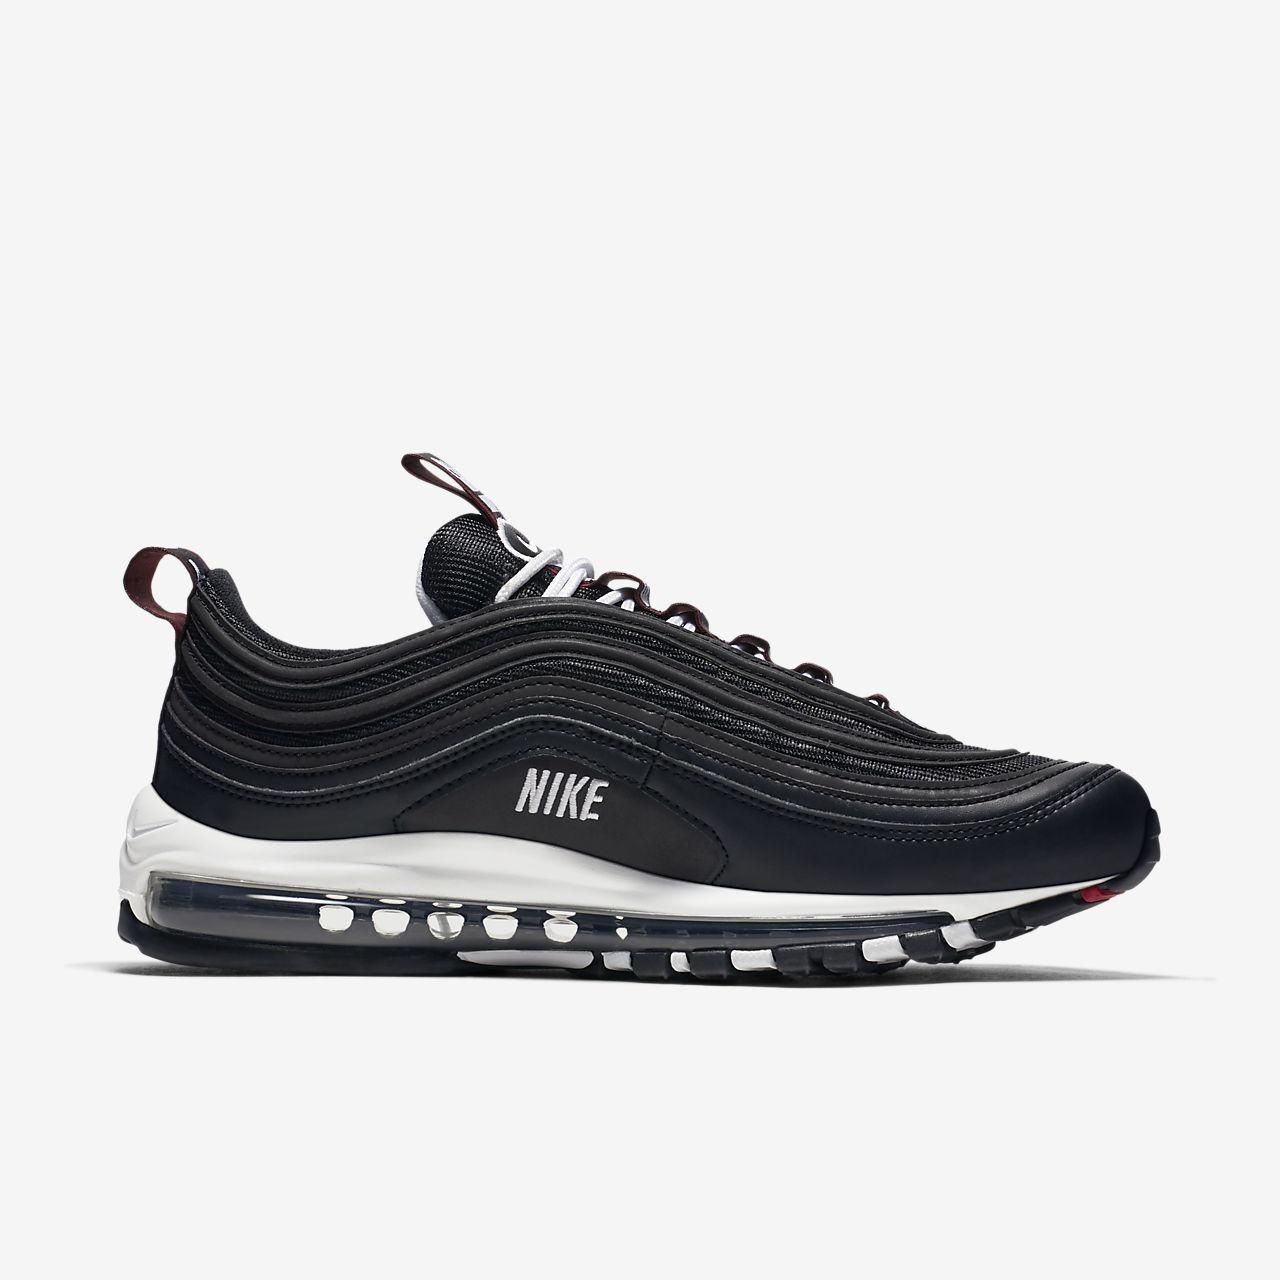 95ee133c428 Nike Air Max 97 Premium Men s Shoe. Nike.com